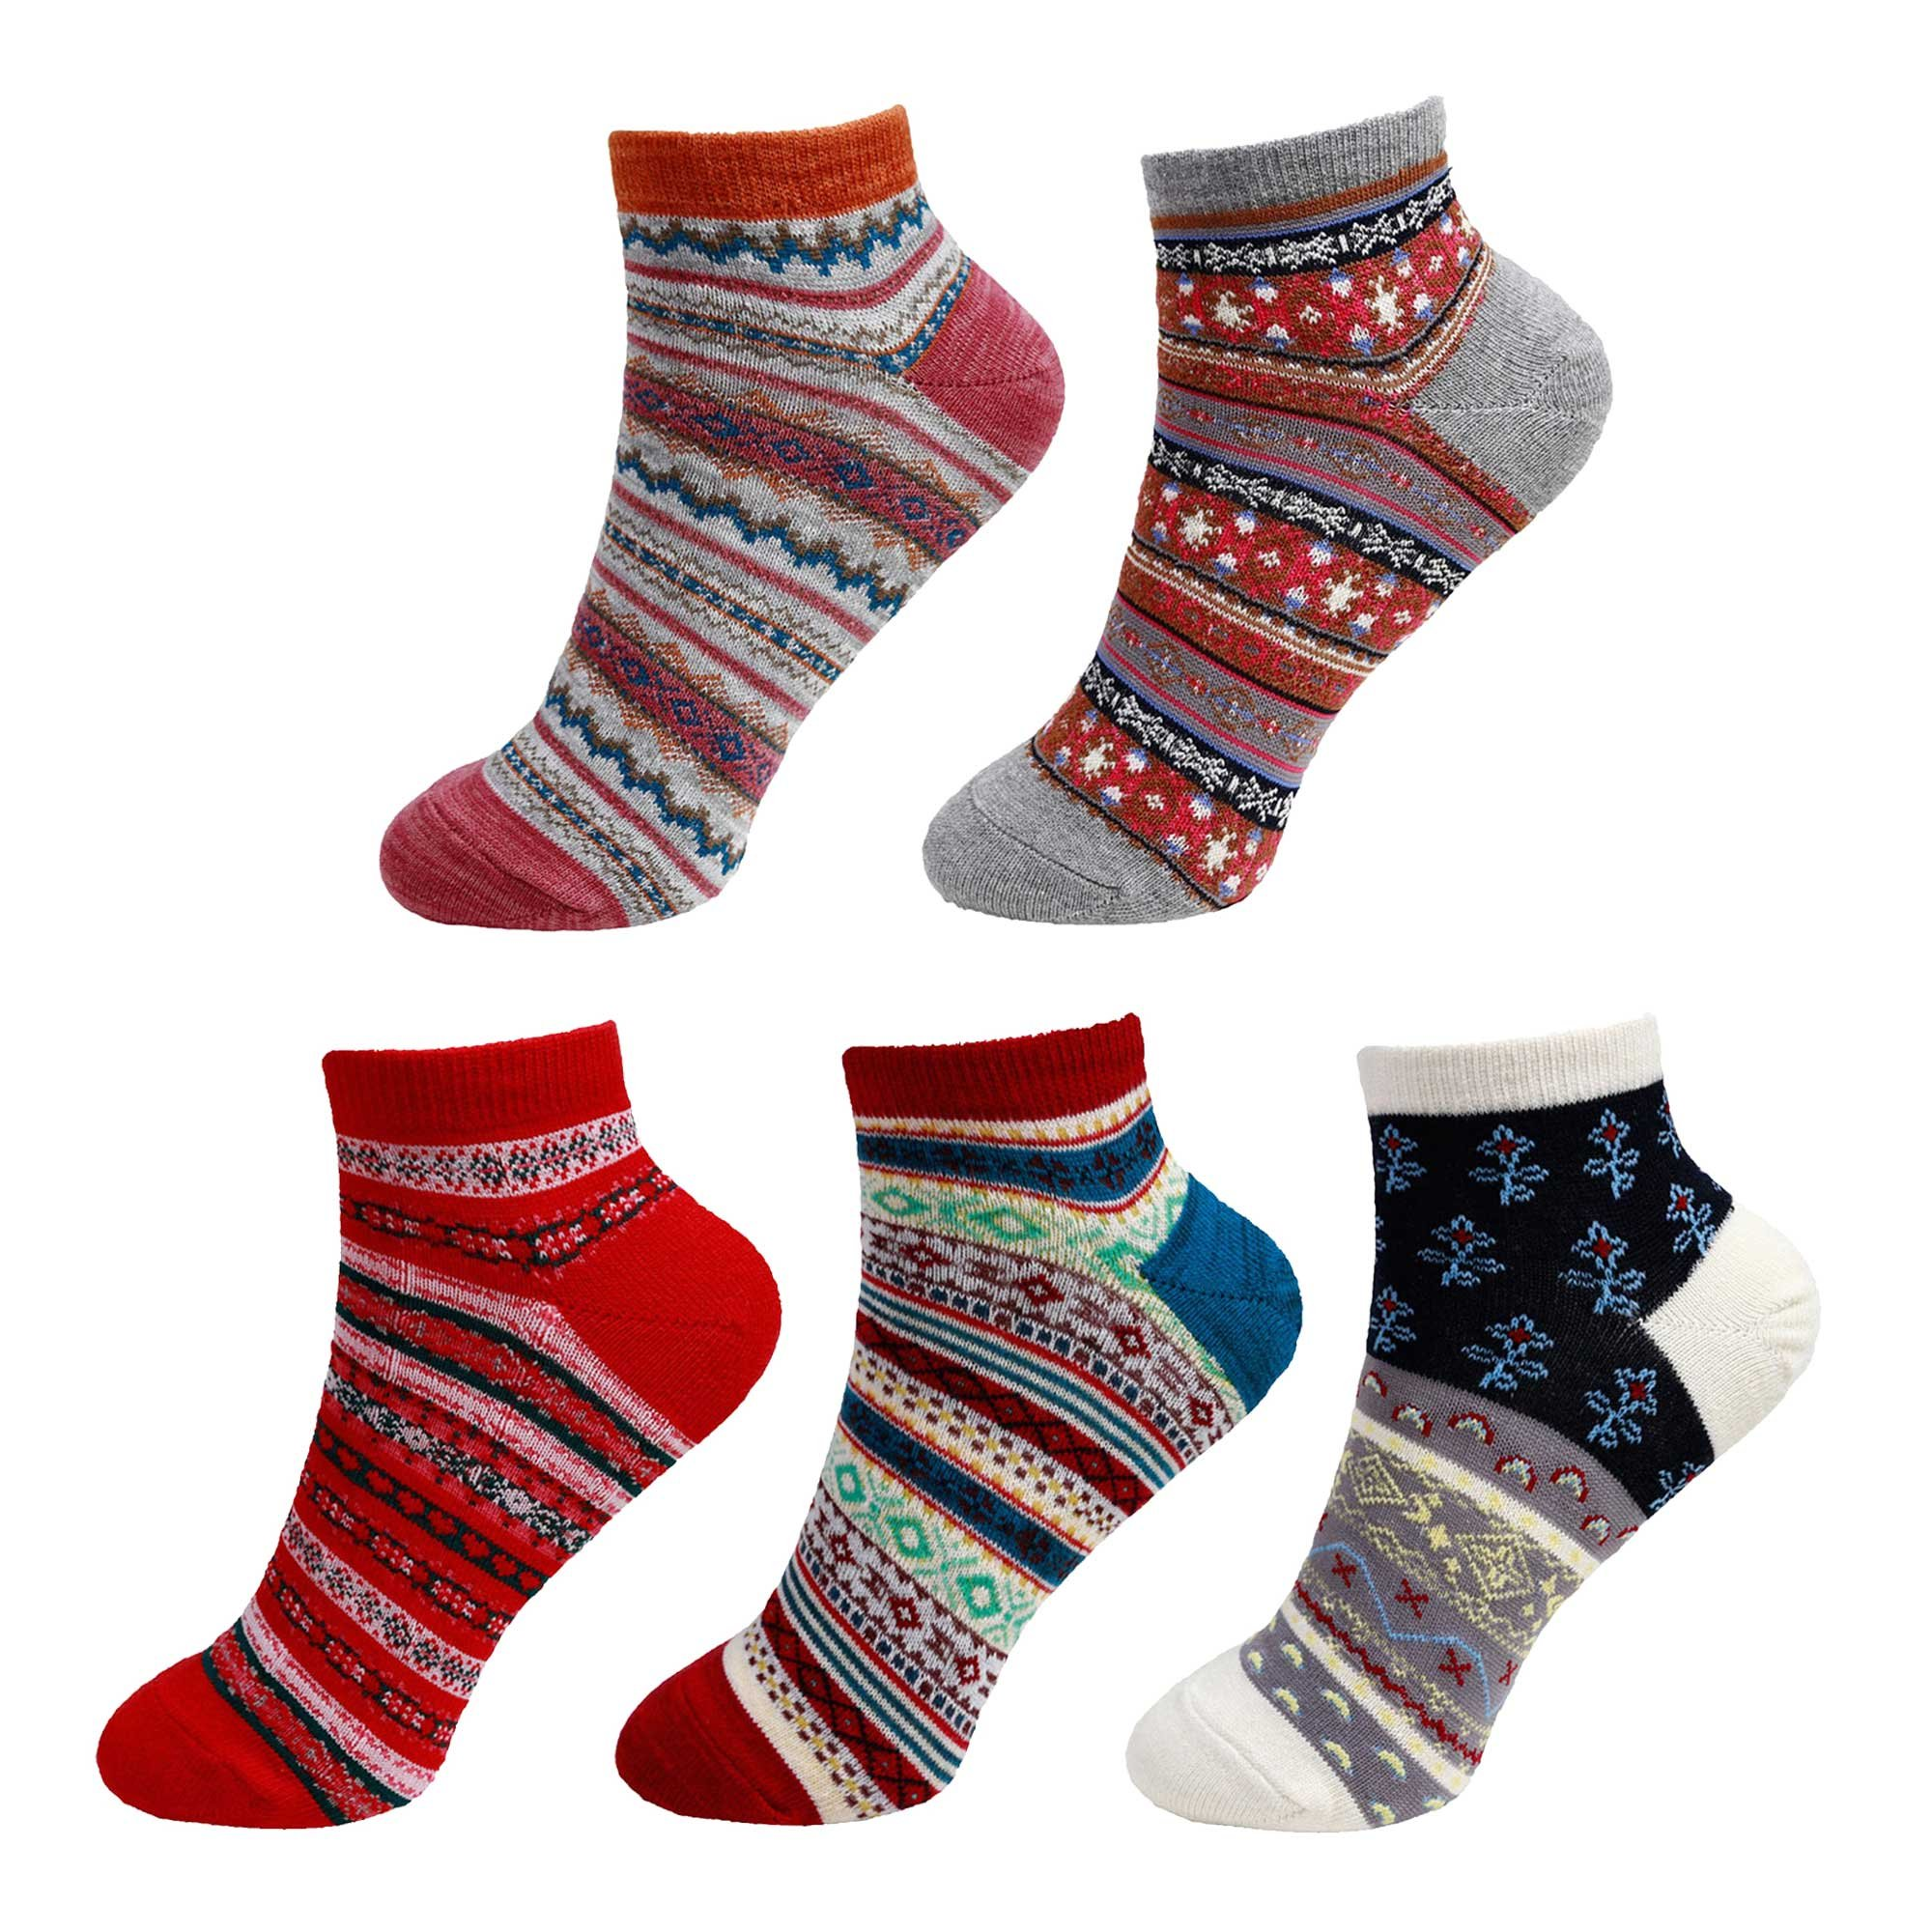 Women's Vintage Style Knitted Colorful Cotton Anklet Socks -5C, Size M/L - 5 prs